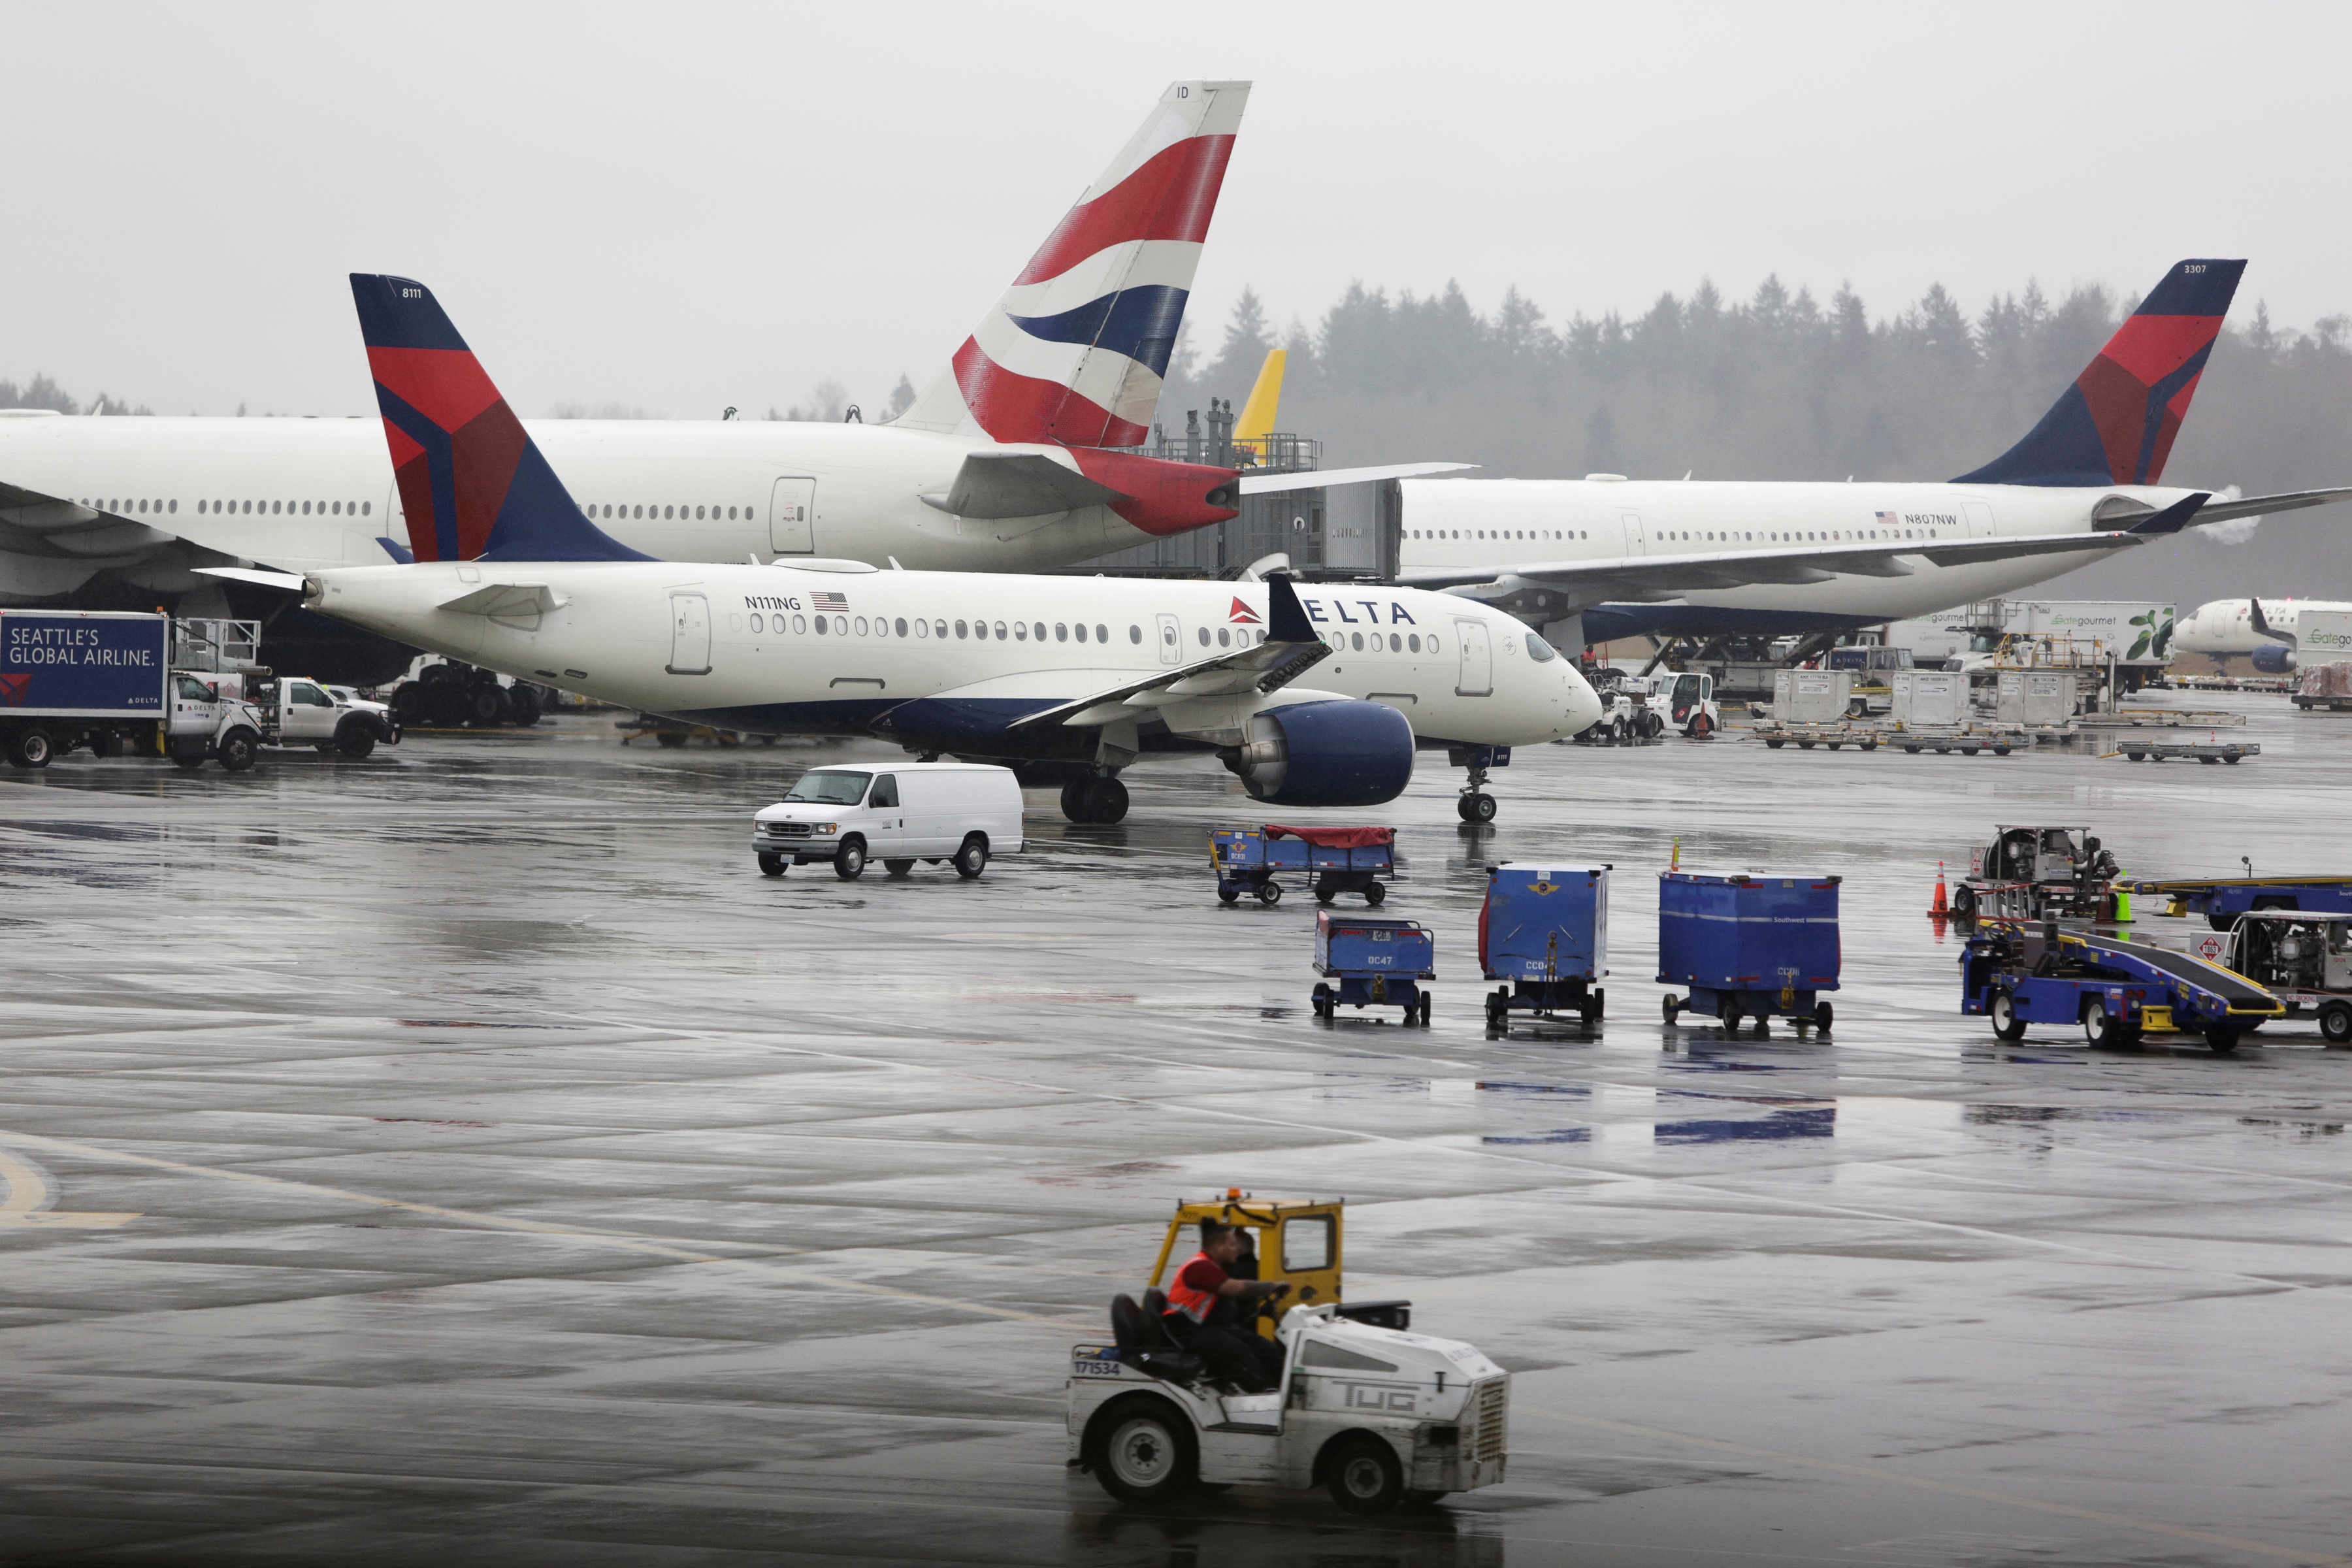 Delta Airlines planes and a British Airways plane (2nd L) are pictured at Seattle-Tacoma International Airport, on the day Delta CEO Ed Bastian told employees he was cutting 40% of capacity in the coming months, the largest in the airline's history, in addition to pursuing aid, in SeaTac, Washington, U.S. March 13, 2020. REUTERS/Jason Redmond